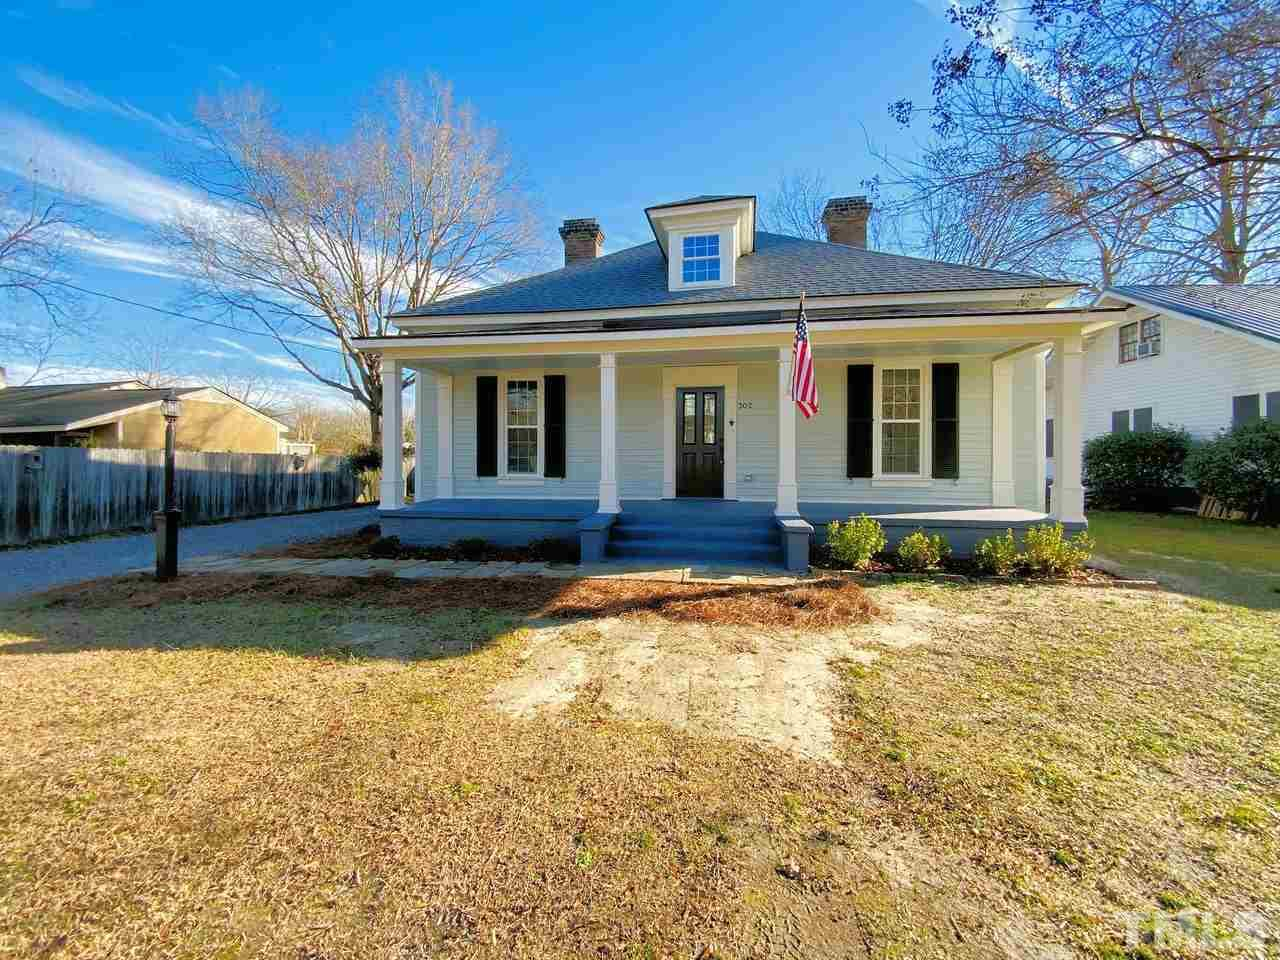 Beautiful renovation of 1917 home!  Extensive restoration and repair inside and out.  Home is a convenient walk to down town Zebulon.